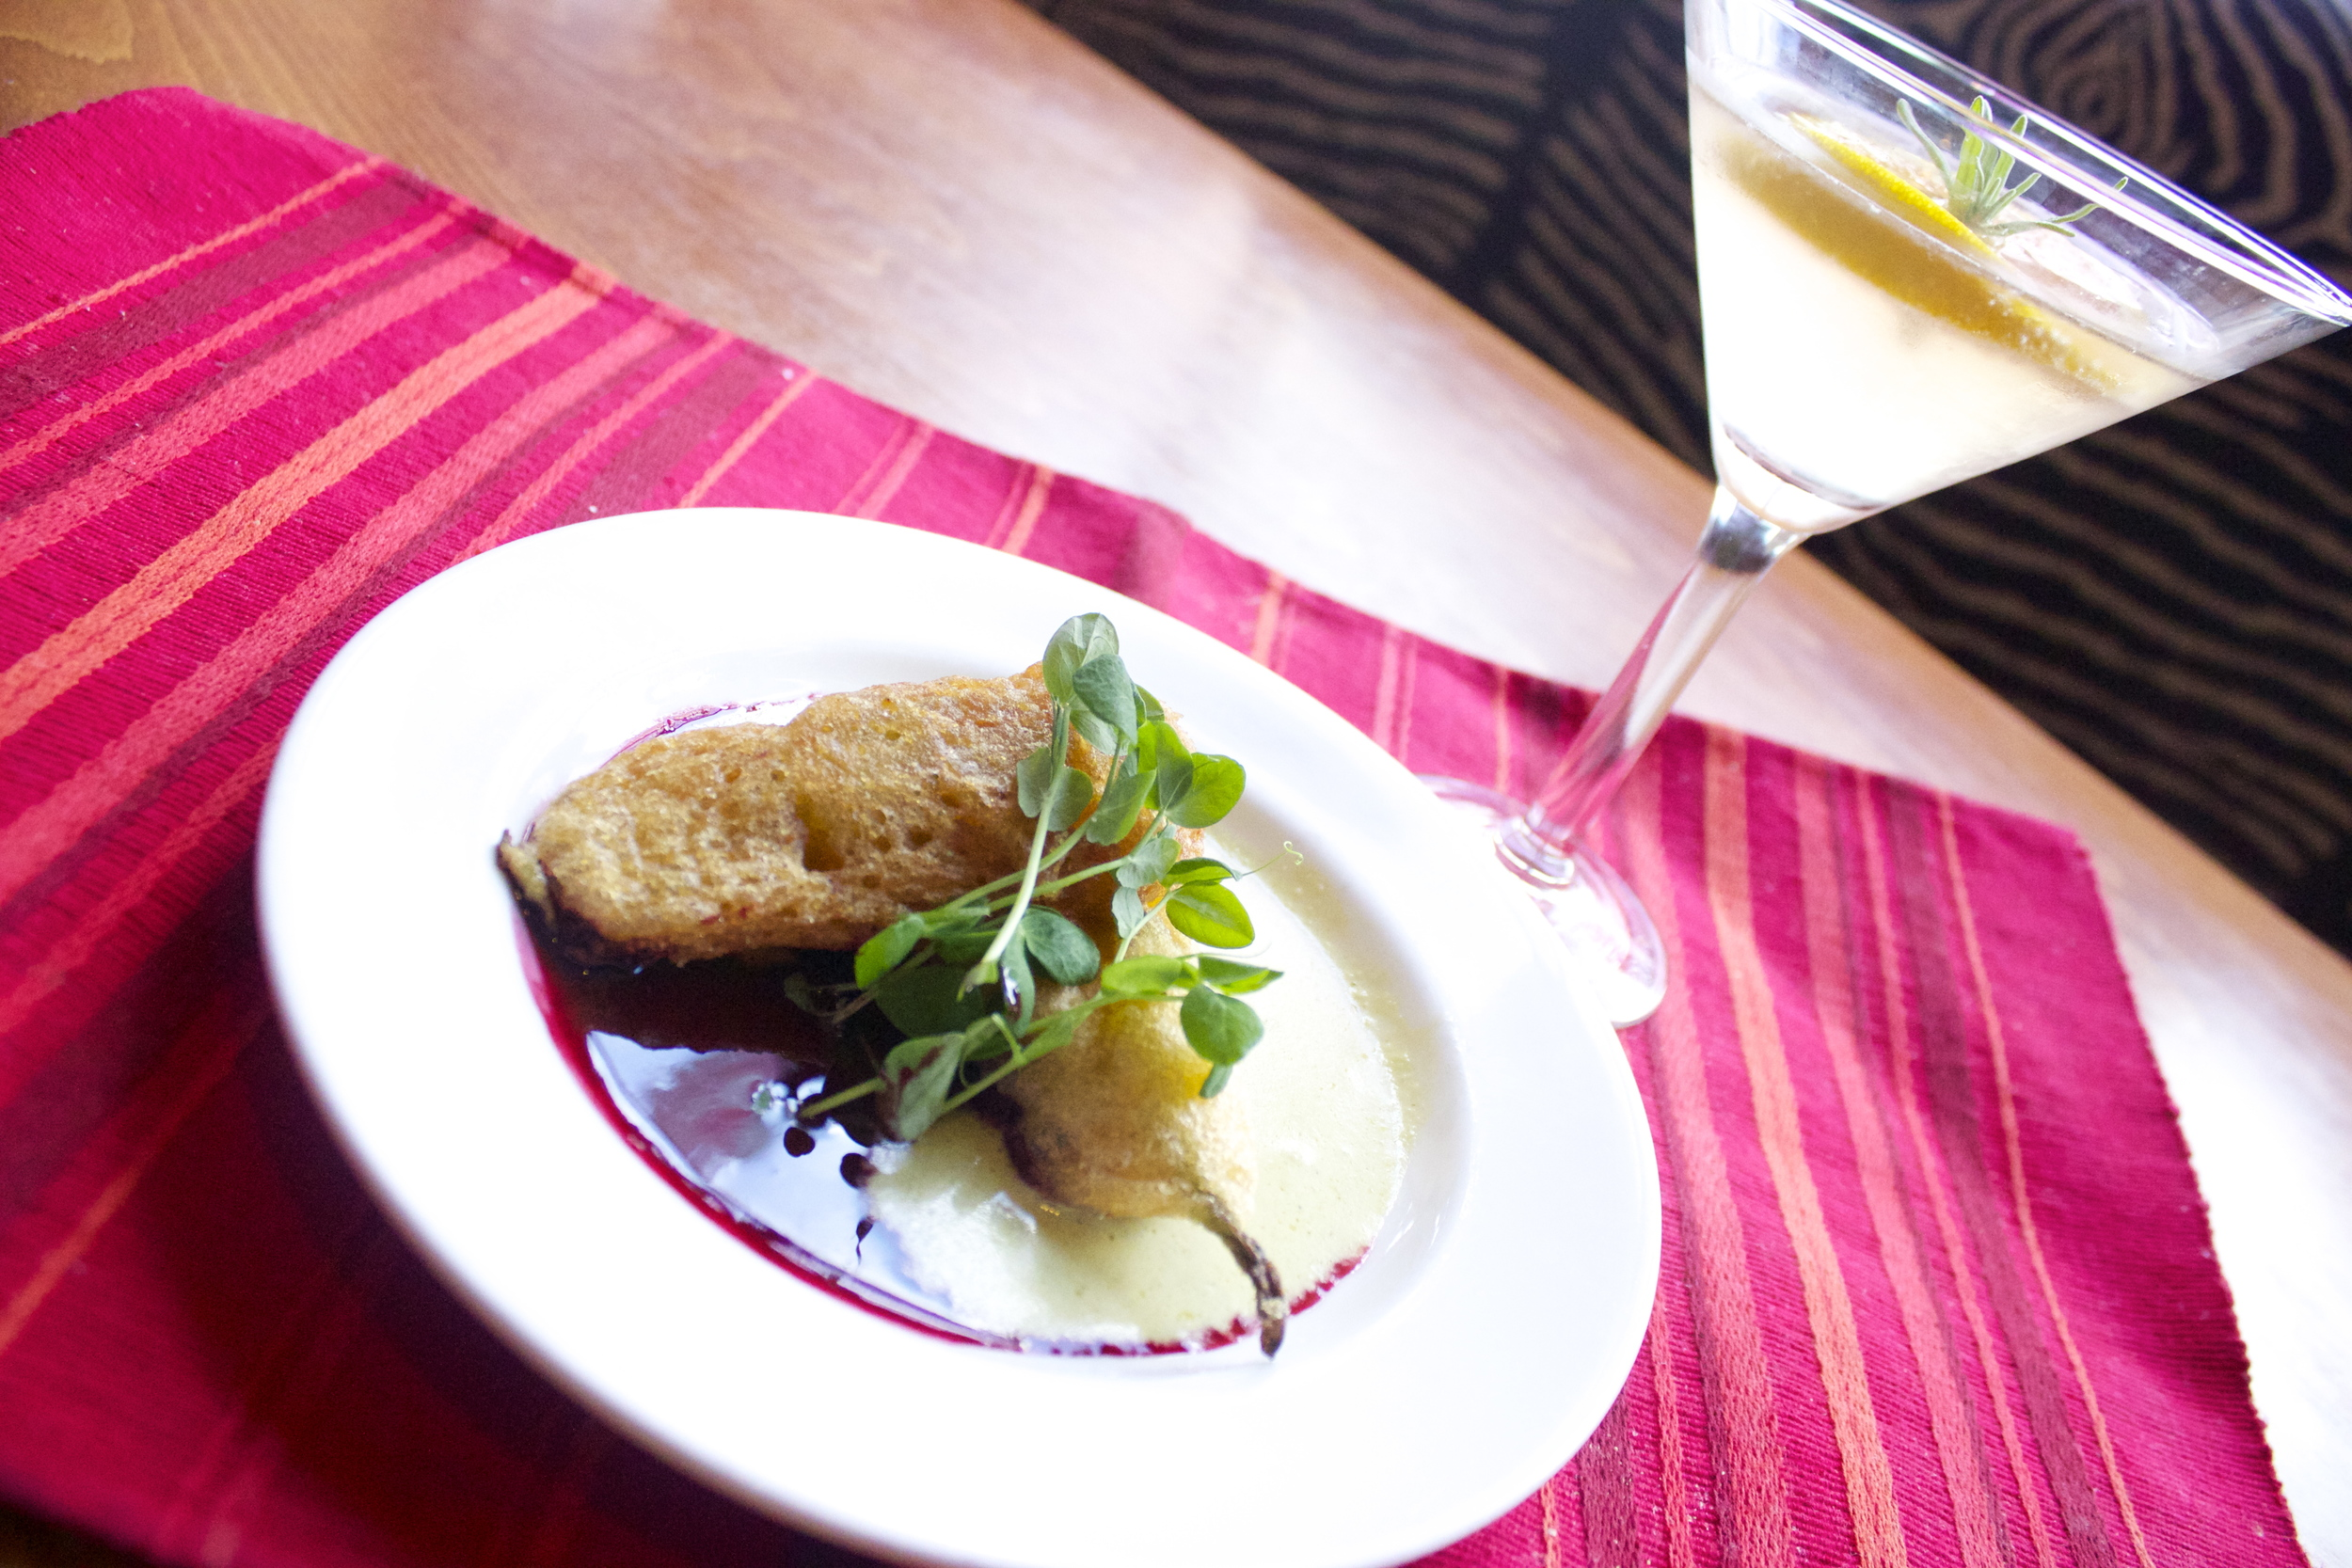 Casa Oaxaca :  Tempura battered Ricotta stuffed squash blossoms served with a spicy hibiscus salsa.